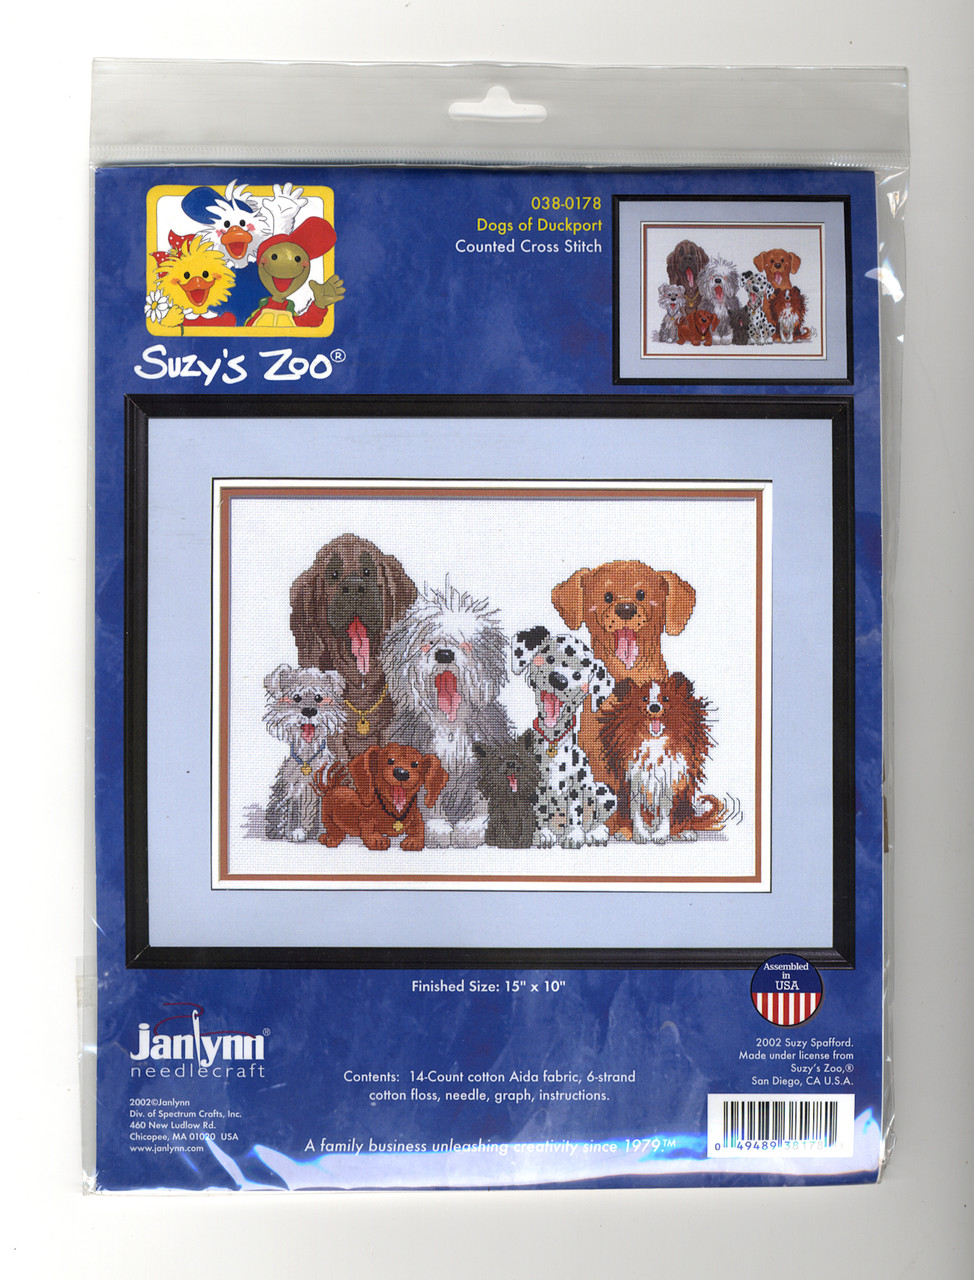 Janlynn - Suzy's Zoo Dogs of Duckport